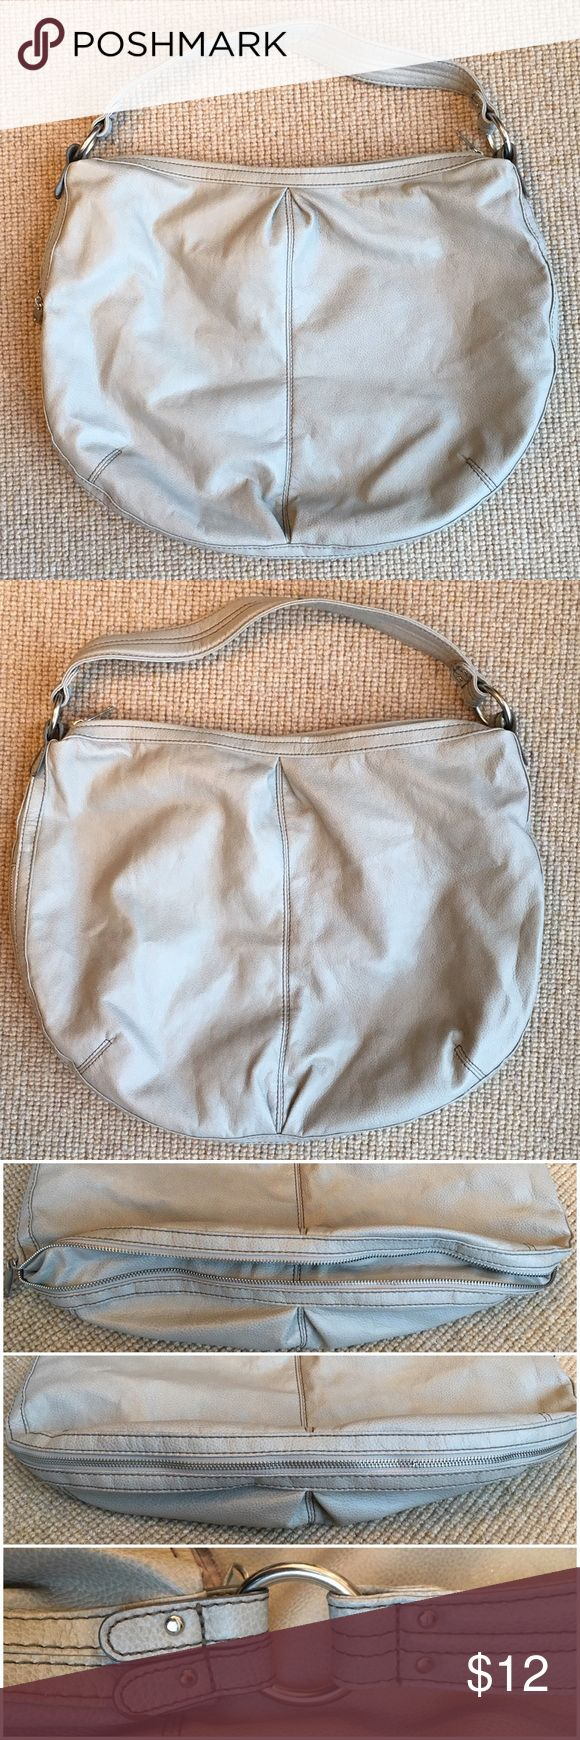 """Large Gray H&M Purse - Faux Leather Large gray purse with silver hardware from H&M, made out of imitation leather. In like-new condition with no flaws. The bottom can be zipped closed or open, to expand the depth of the purse. Approximate measurements: 14.5"""" top to bottom, 18.75"""" across the middle, 10"""" strap drop, and 3.25"""" depth. From a smoke free and let free home. Feel free to ask any questions. H&M Bags Shoulder Bags"""